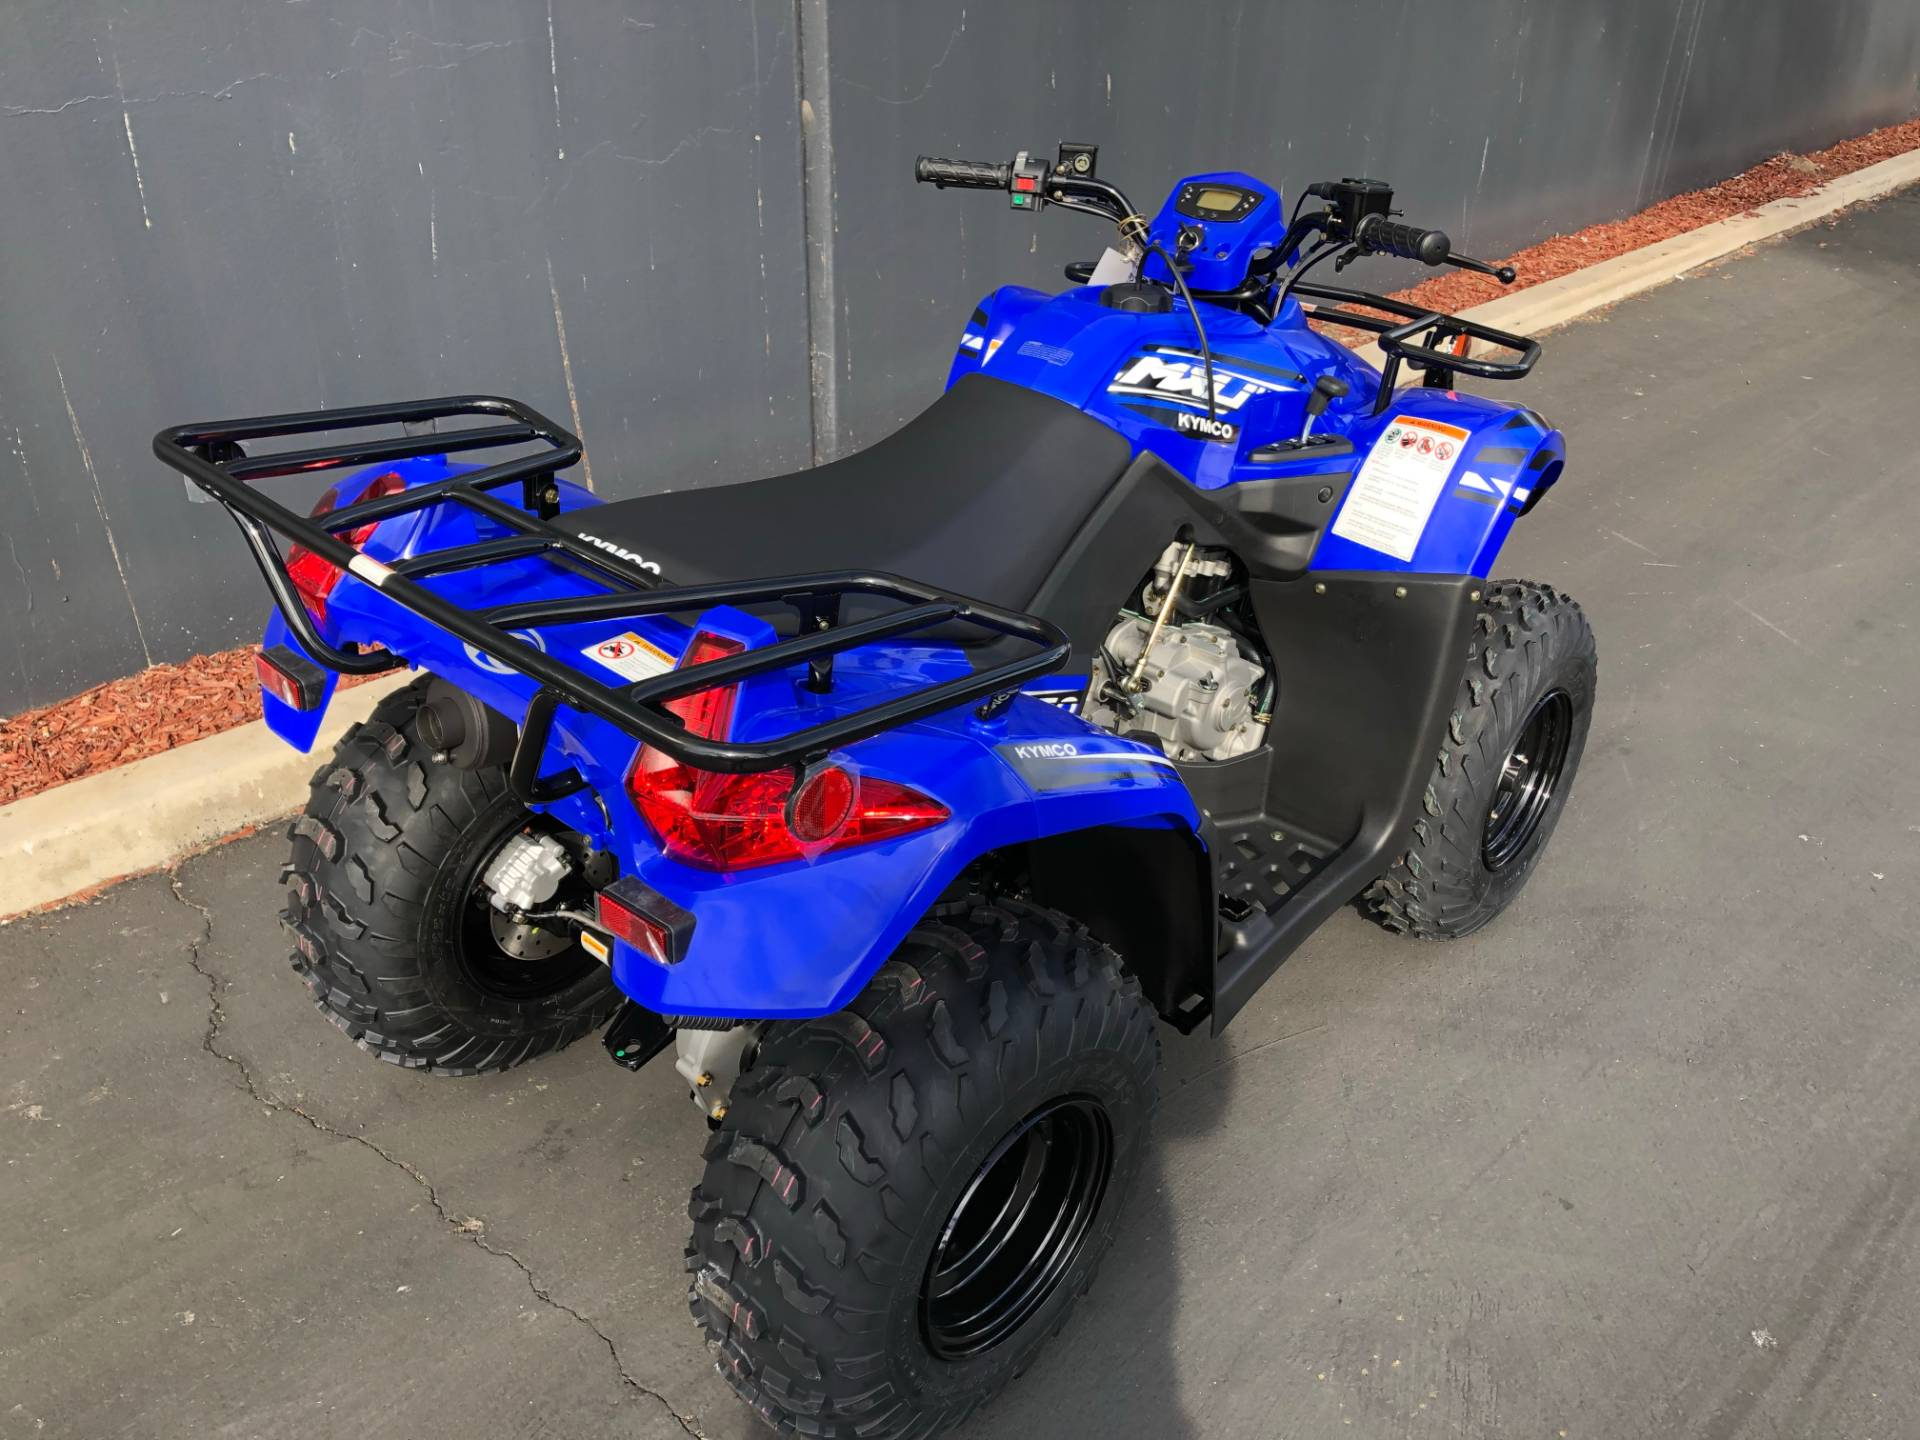 2019 Kymco MXU270 in Chula Vista, California - Photo 3